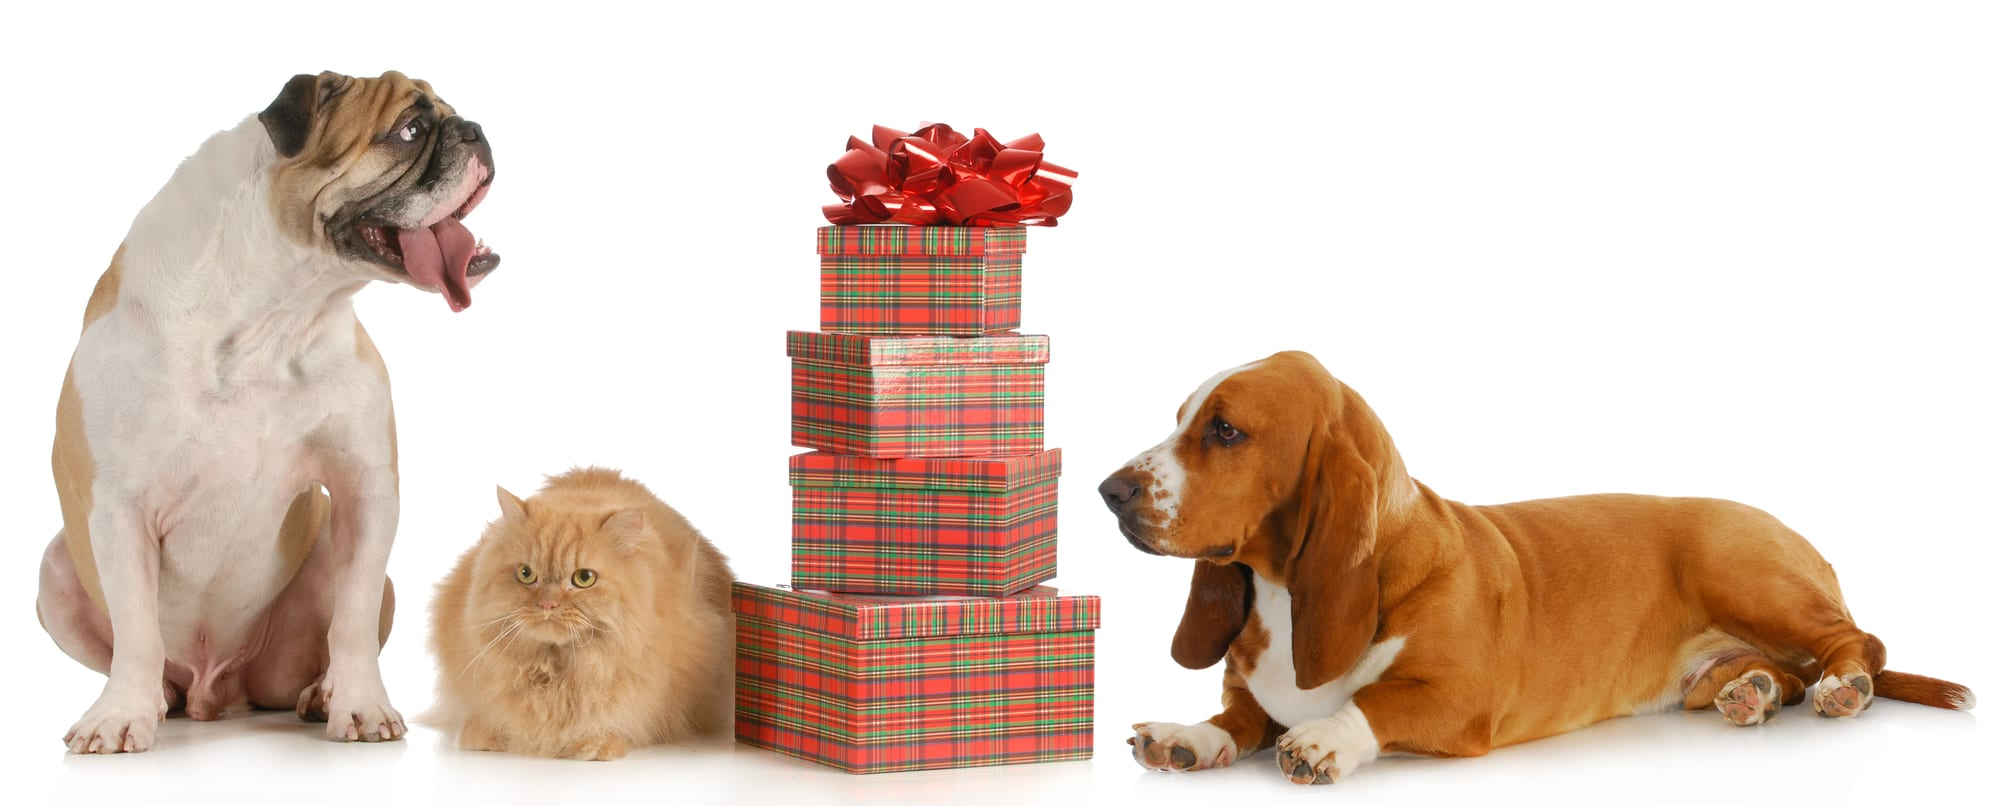 Two dogs and a cat pose with wrapped holiday presents. The best tech pet gifts are those that cater to your pet's needs as well as your own.